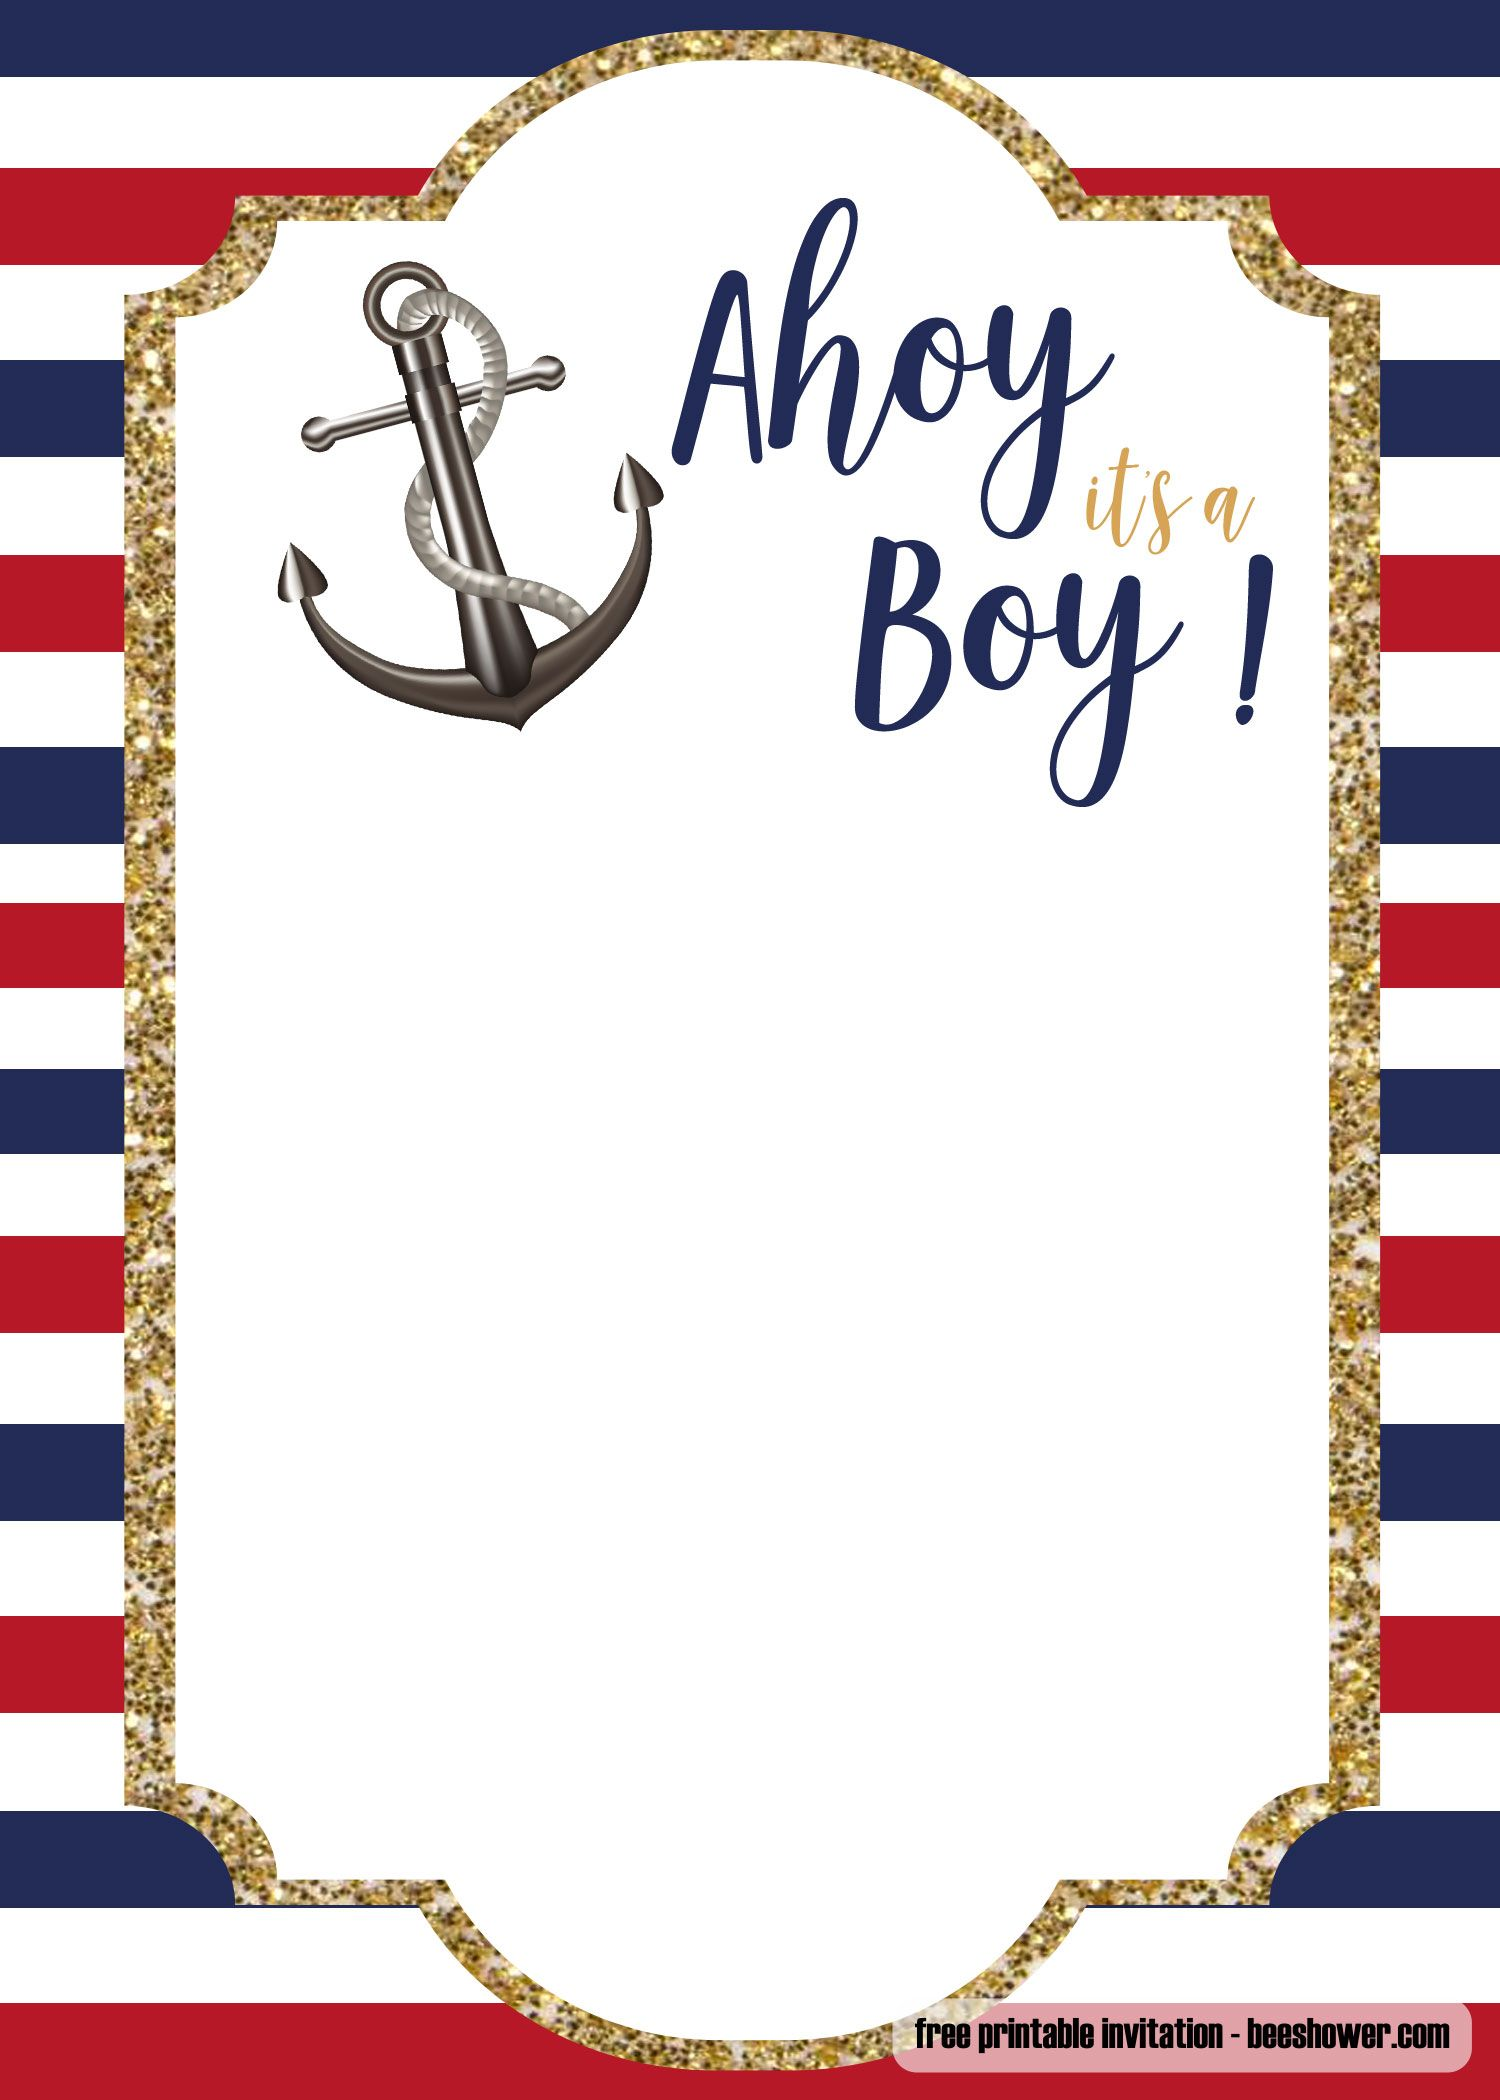 FREE Nautical Baby Shower Invitations Templates  Nautical baby